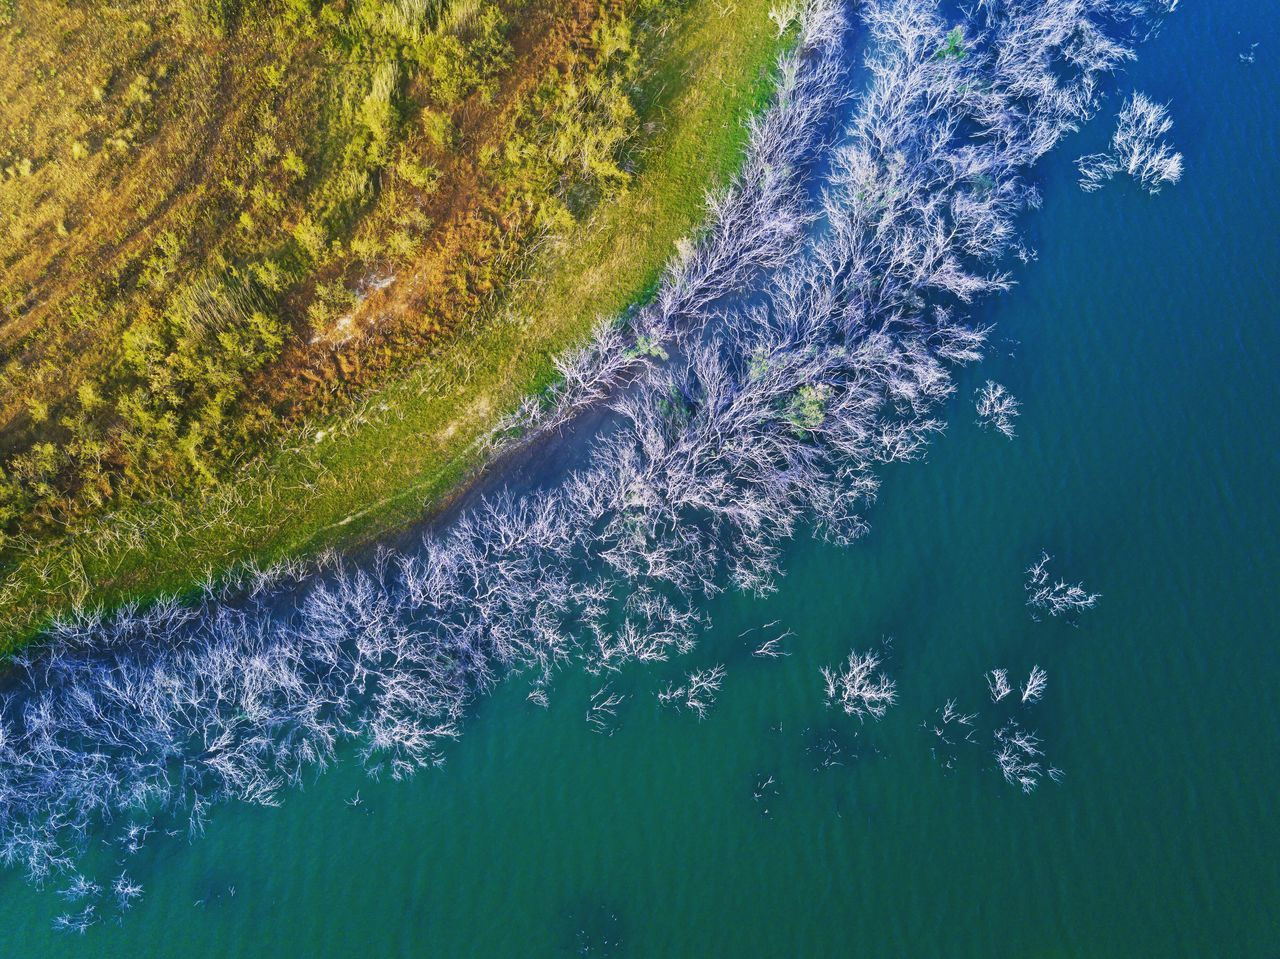 Water Nature High Angle View Beauty In Nature Scenics No People Waterfront Day Outdoors Tranquility Tranquil Scene Tree Sea Mountain Nautical Vessel Dronephotography Drone  Aereal View Aerial Photography